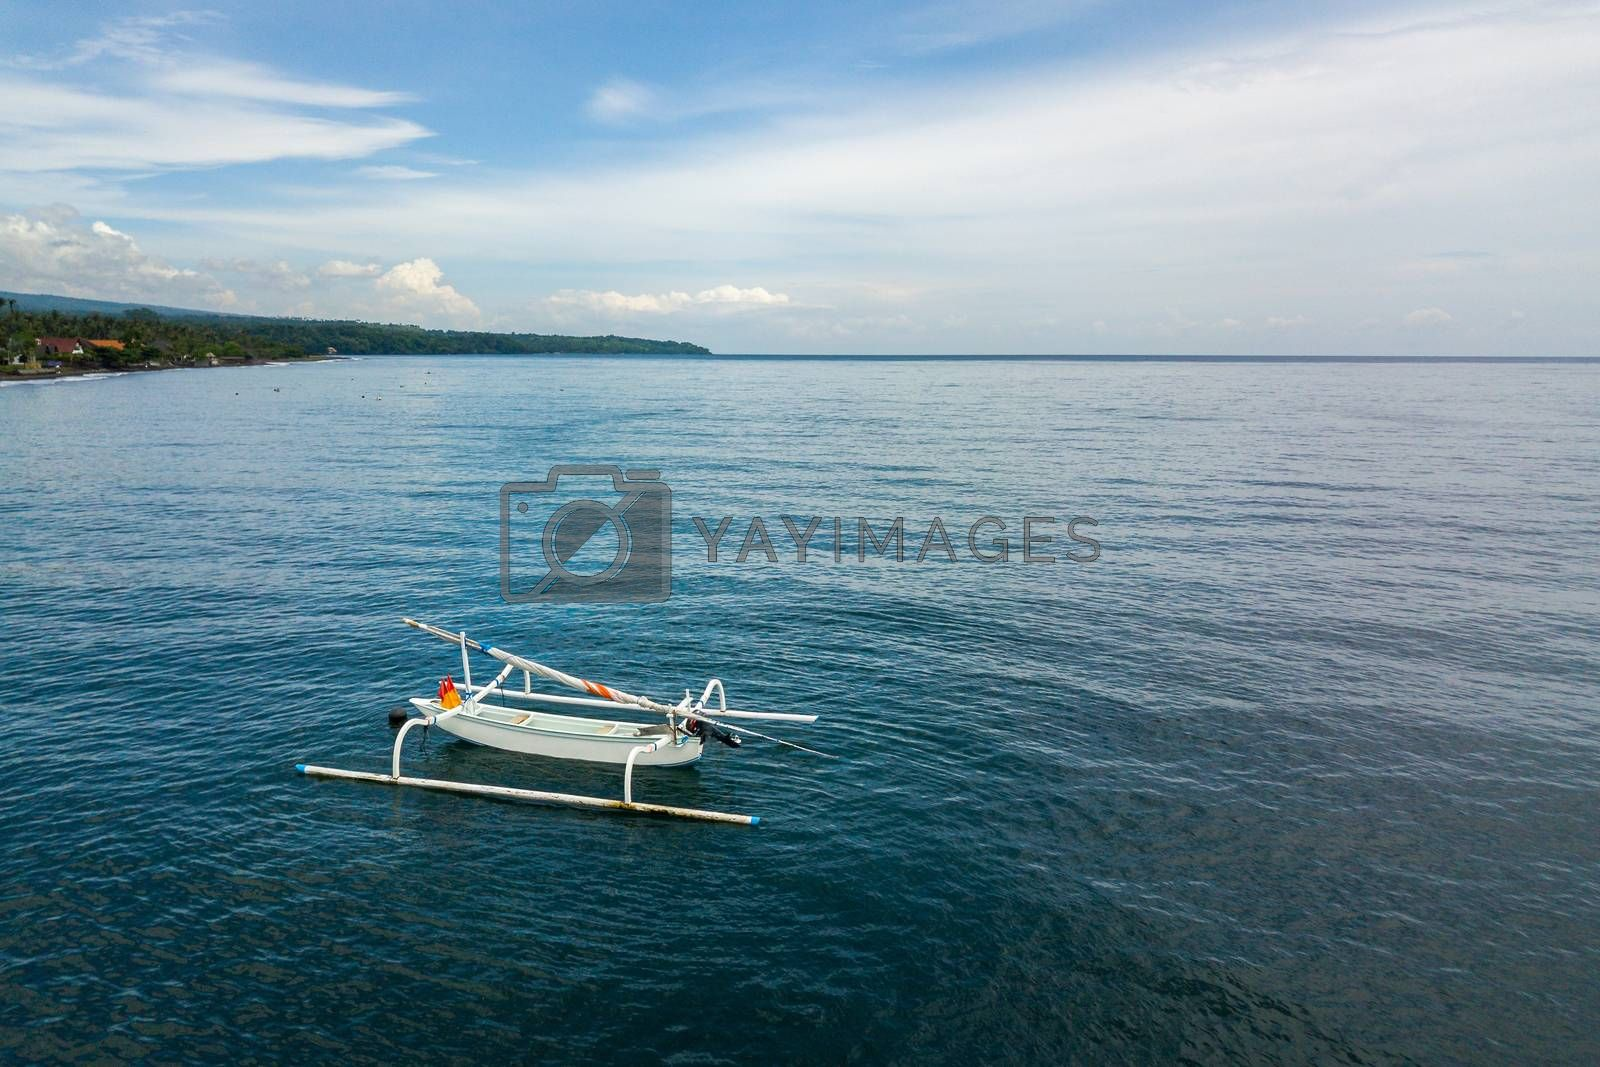 Aerial view of a traditional fishing boat called jukung in Bali, Indonesia.